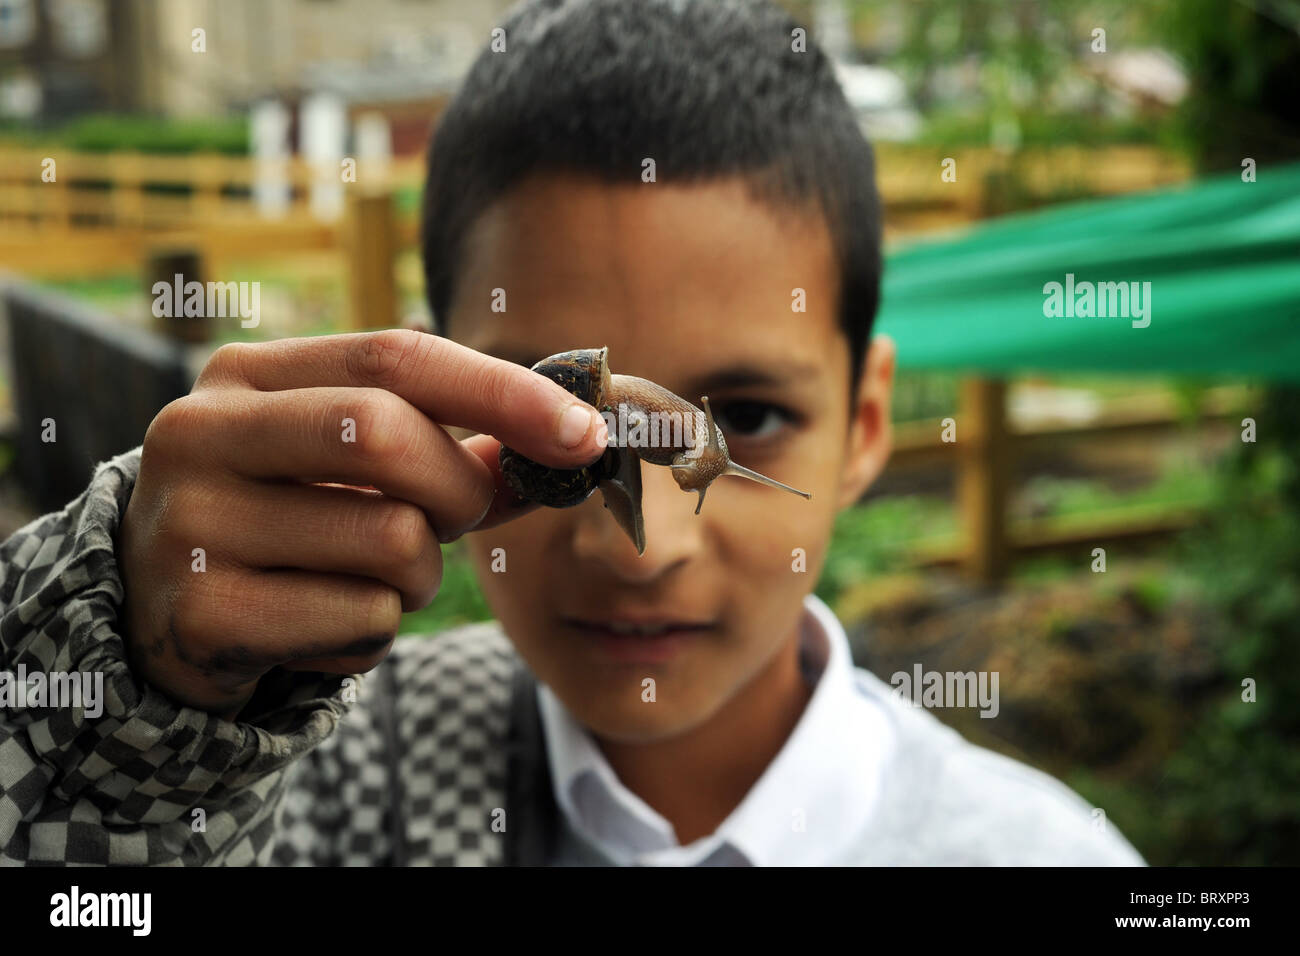 A child studies a garden snail lifting it up, as part of the gardening experience visiting an inner city allotment, - Stock Image